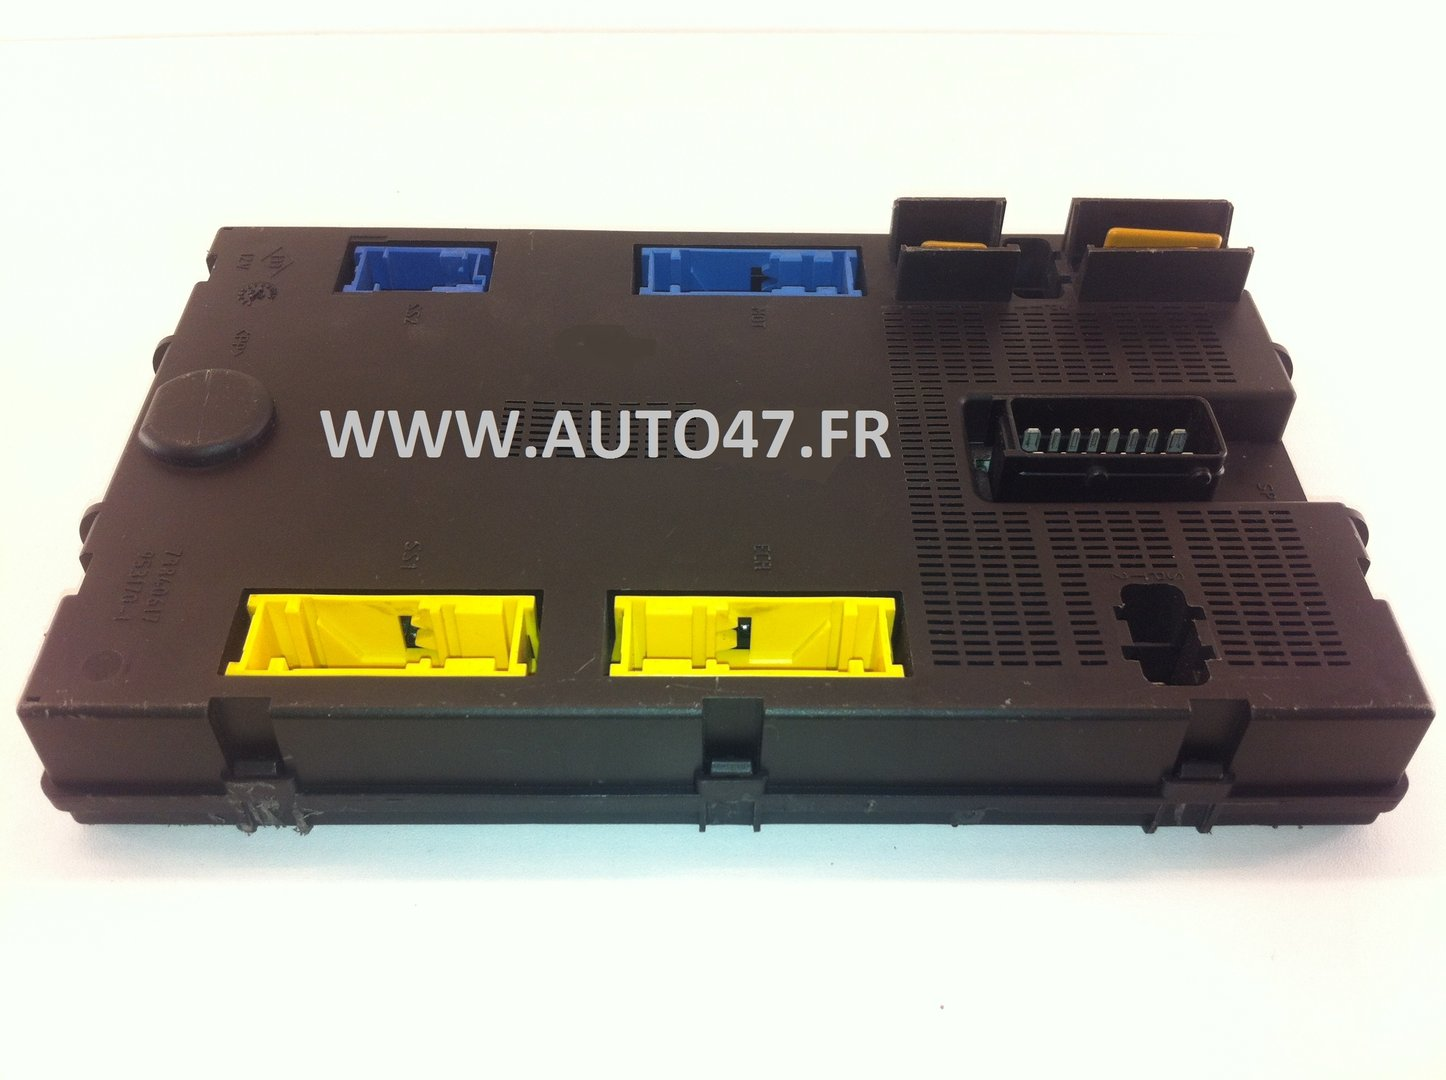 Alzgo bii renault espace 3 reference: 6025408262